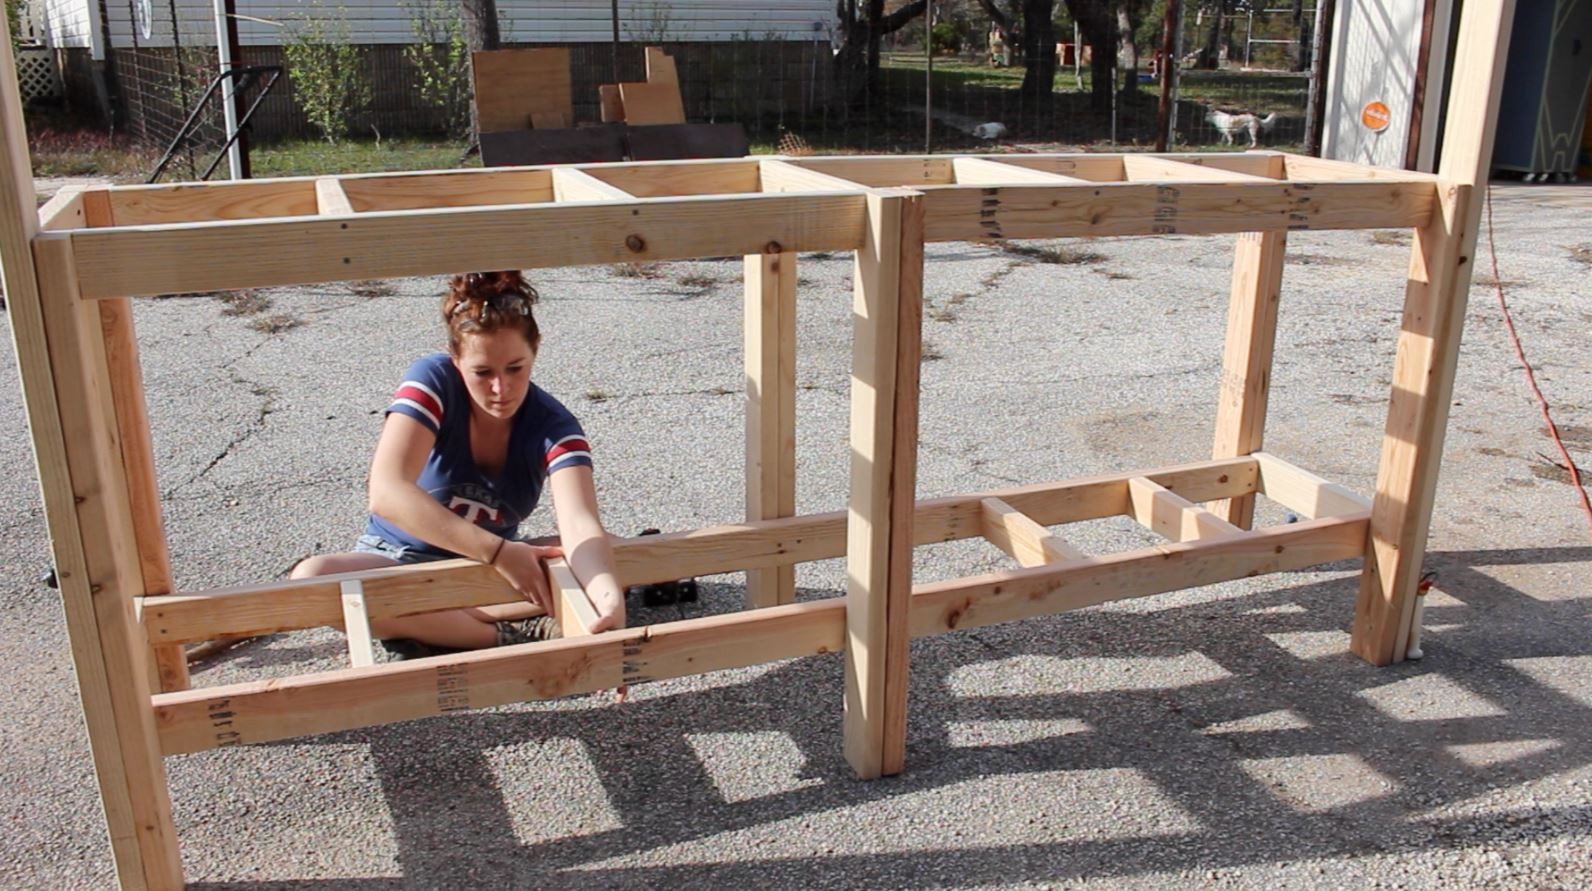 Best ideas about Workbench DIY Plans . Save or Pin DIY Workbench 8 Wilker Do s Now.